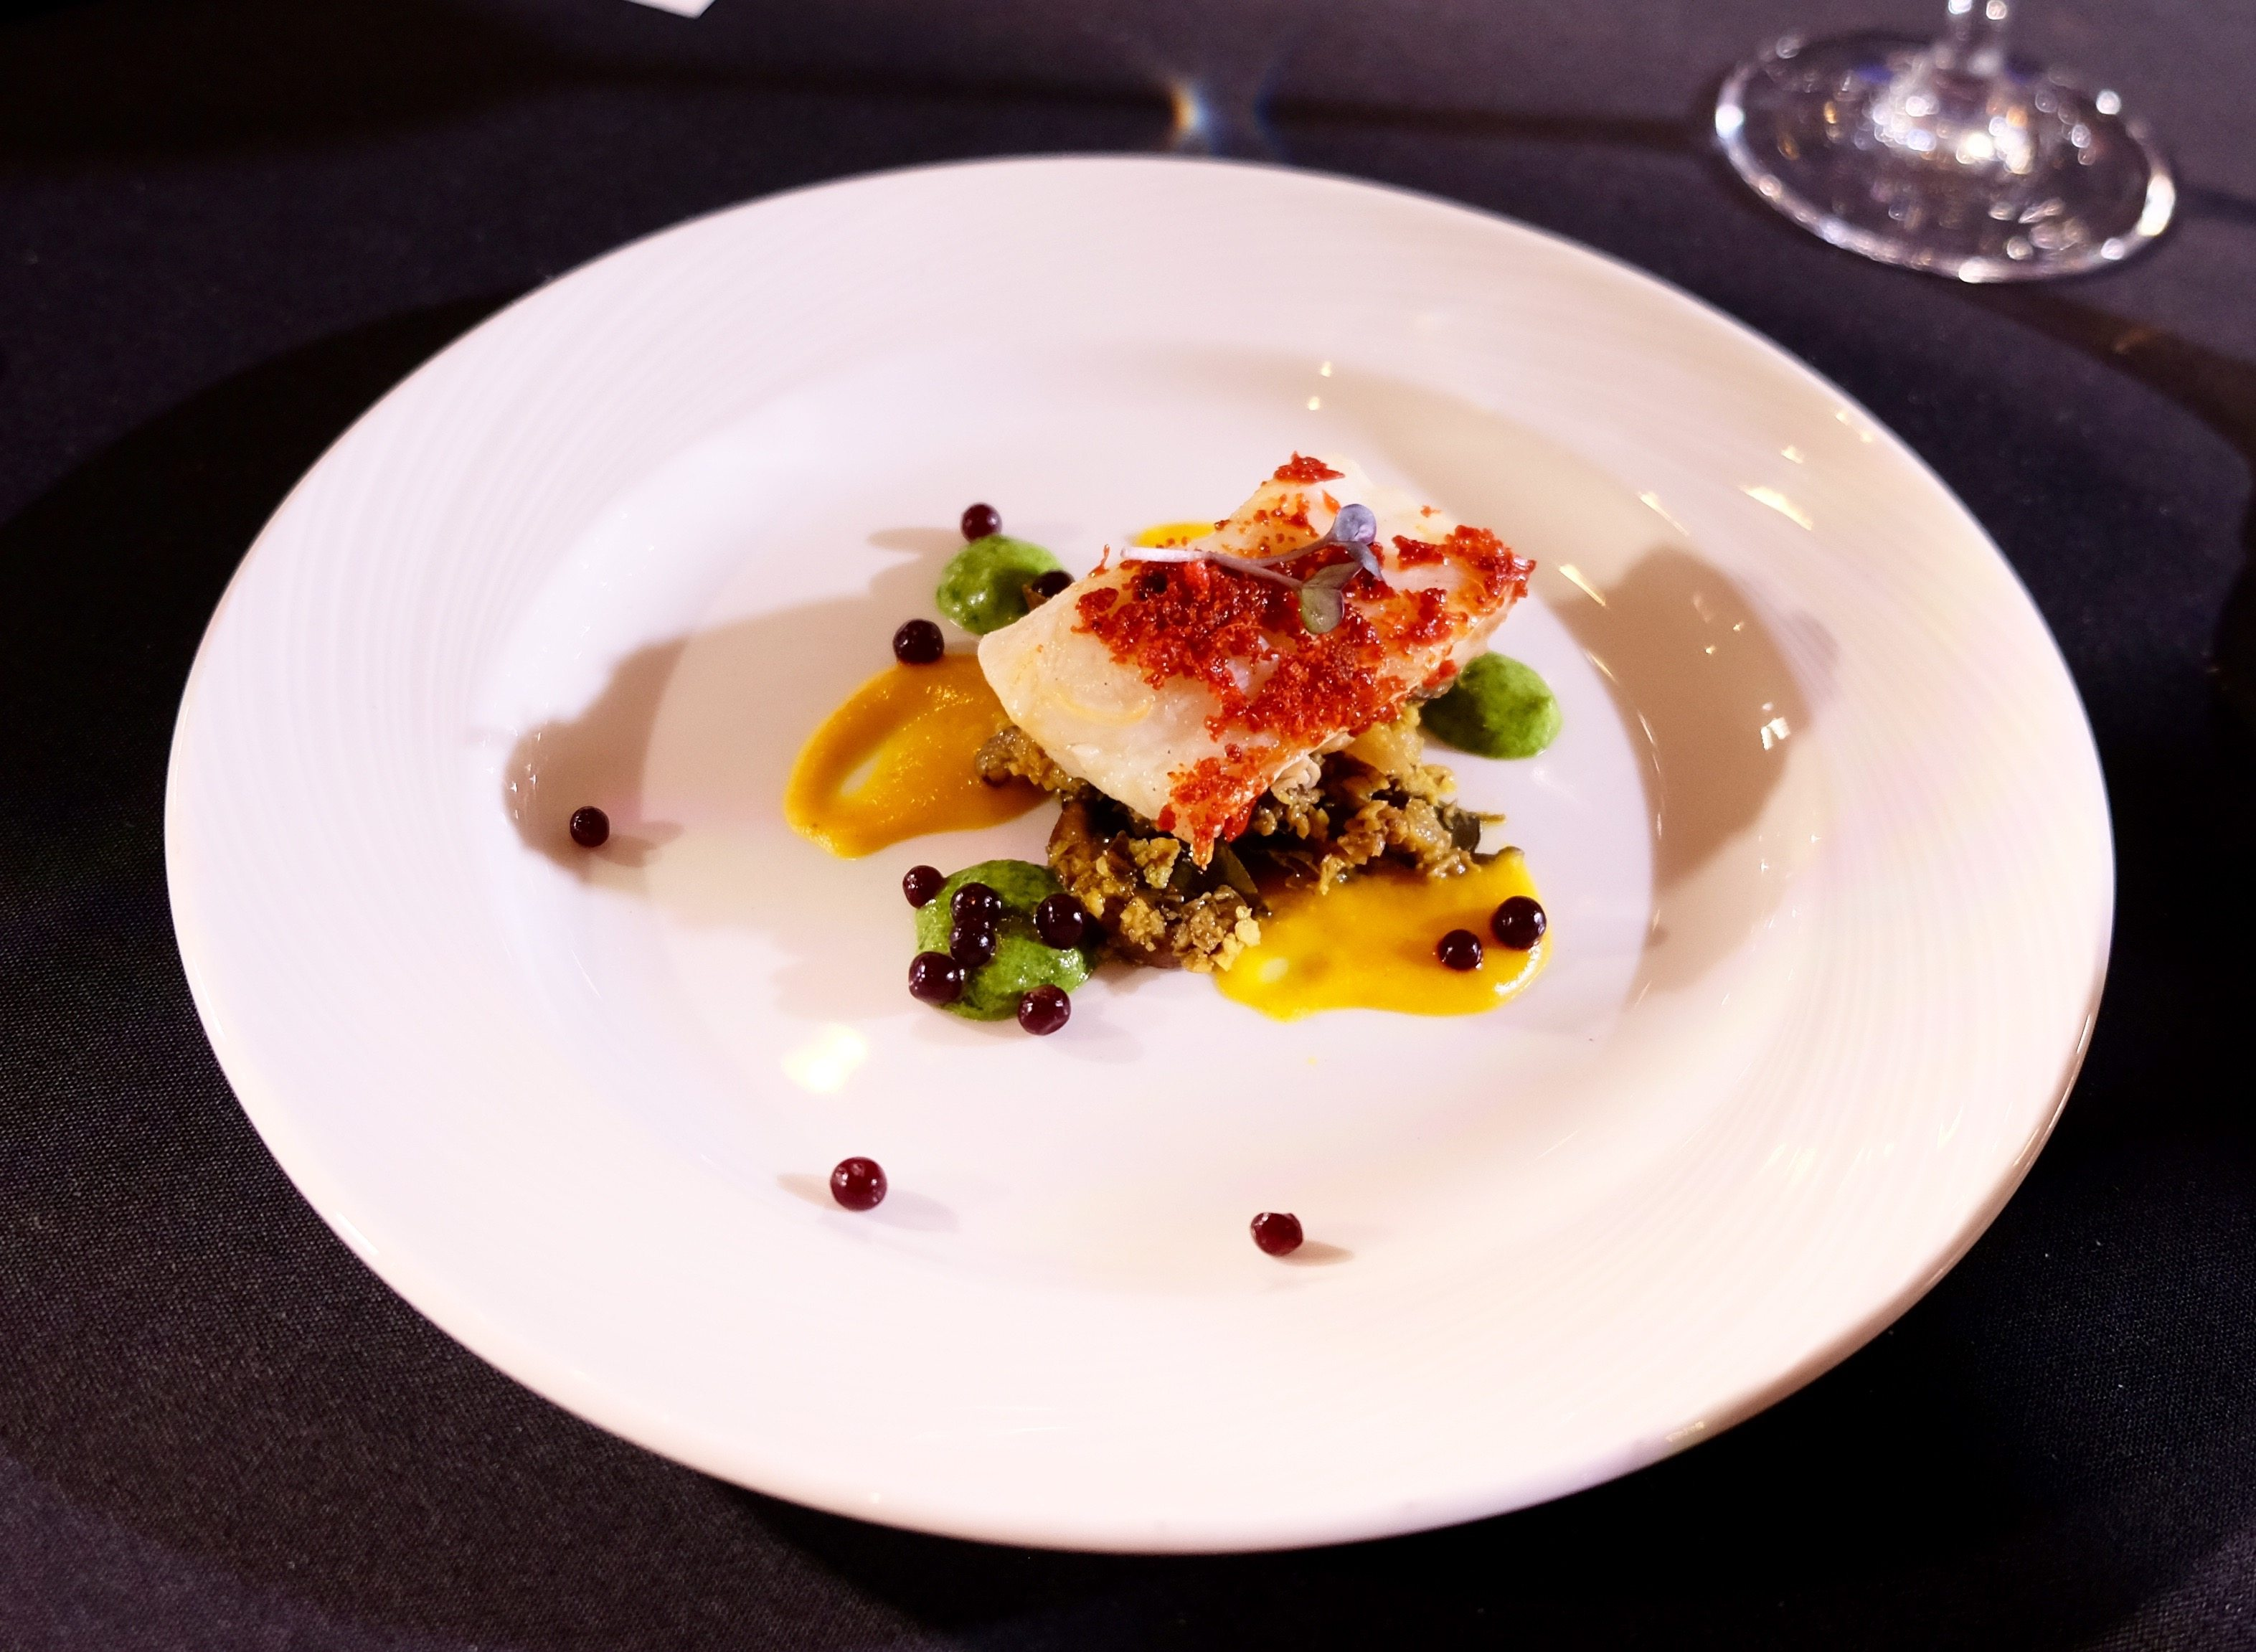 Chef Joe Thottungal's won gold with this halibut dish in 2016